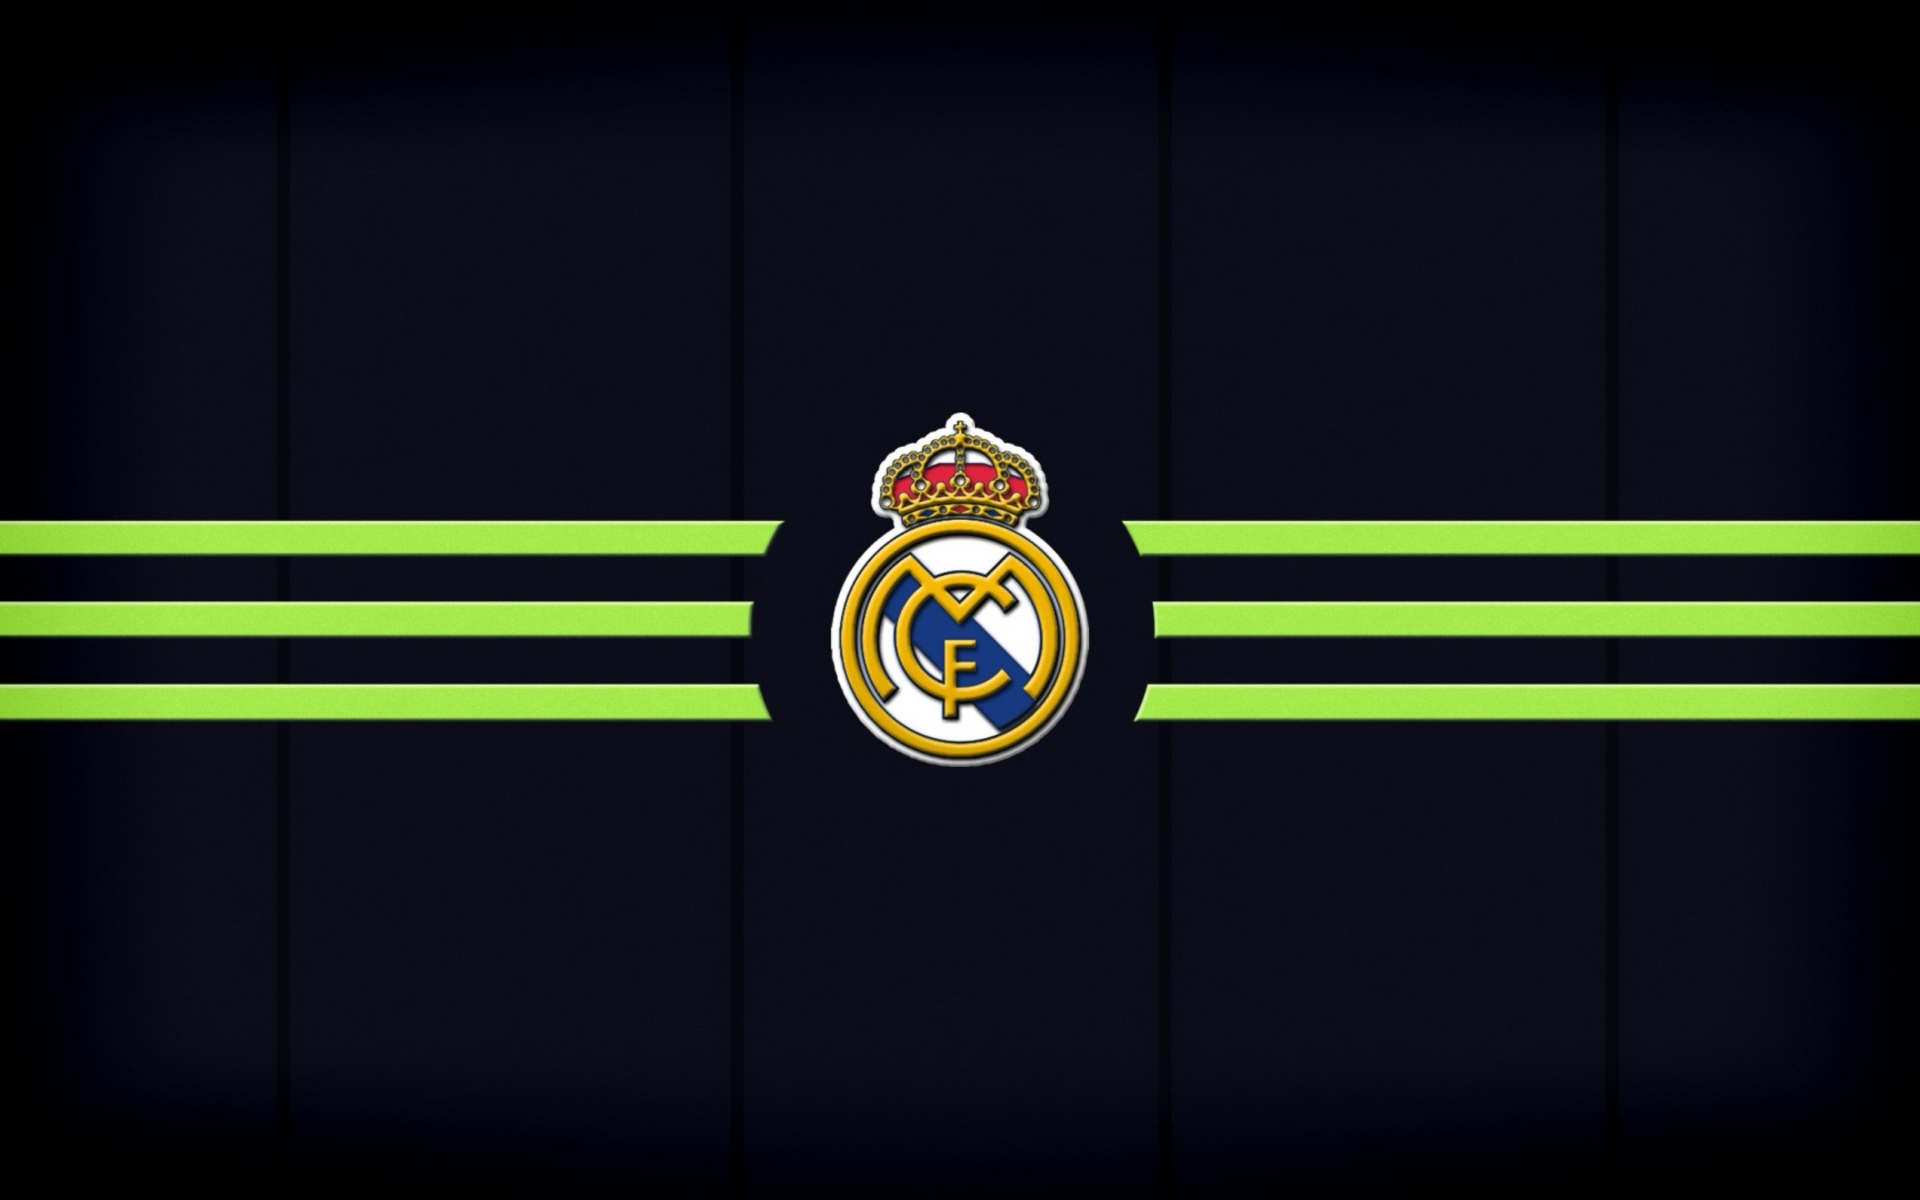 Real Madrid Desktop Wallpaper HD